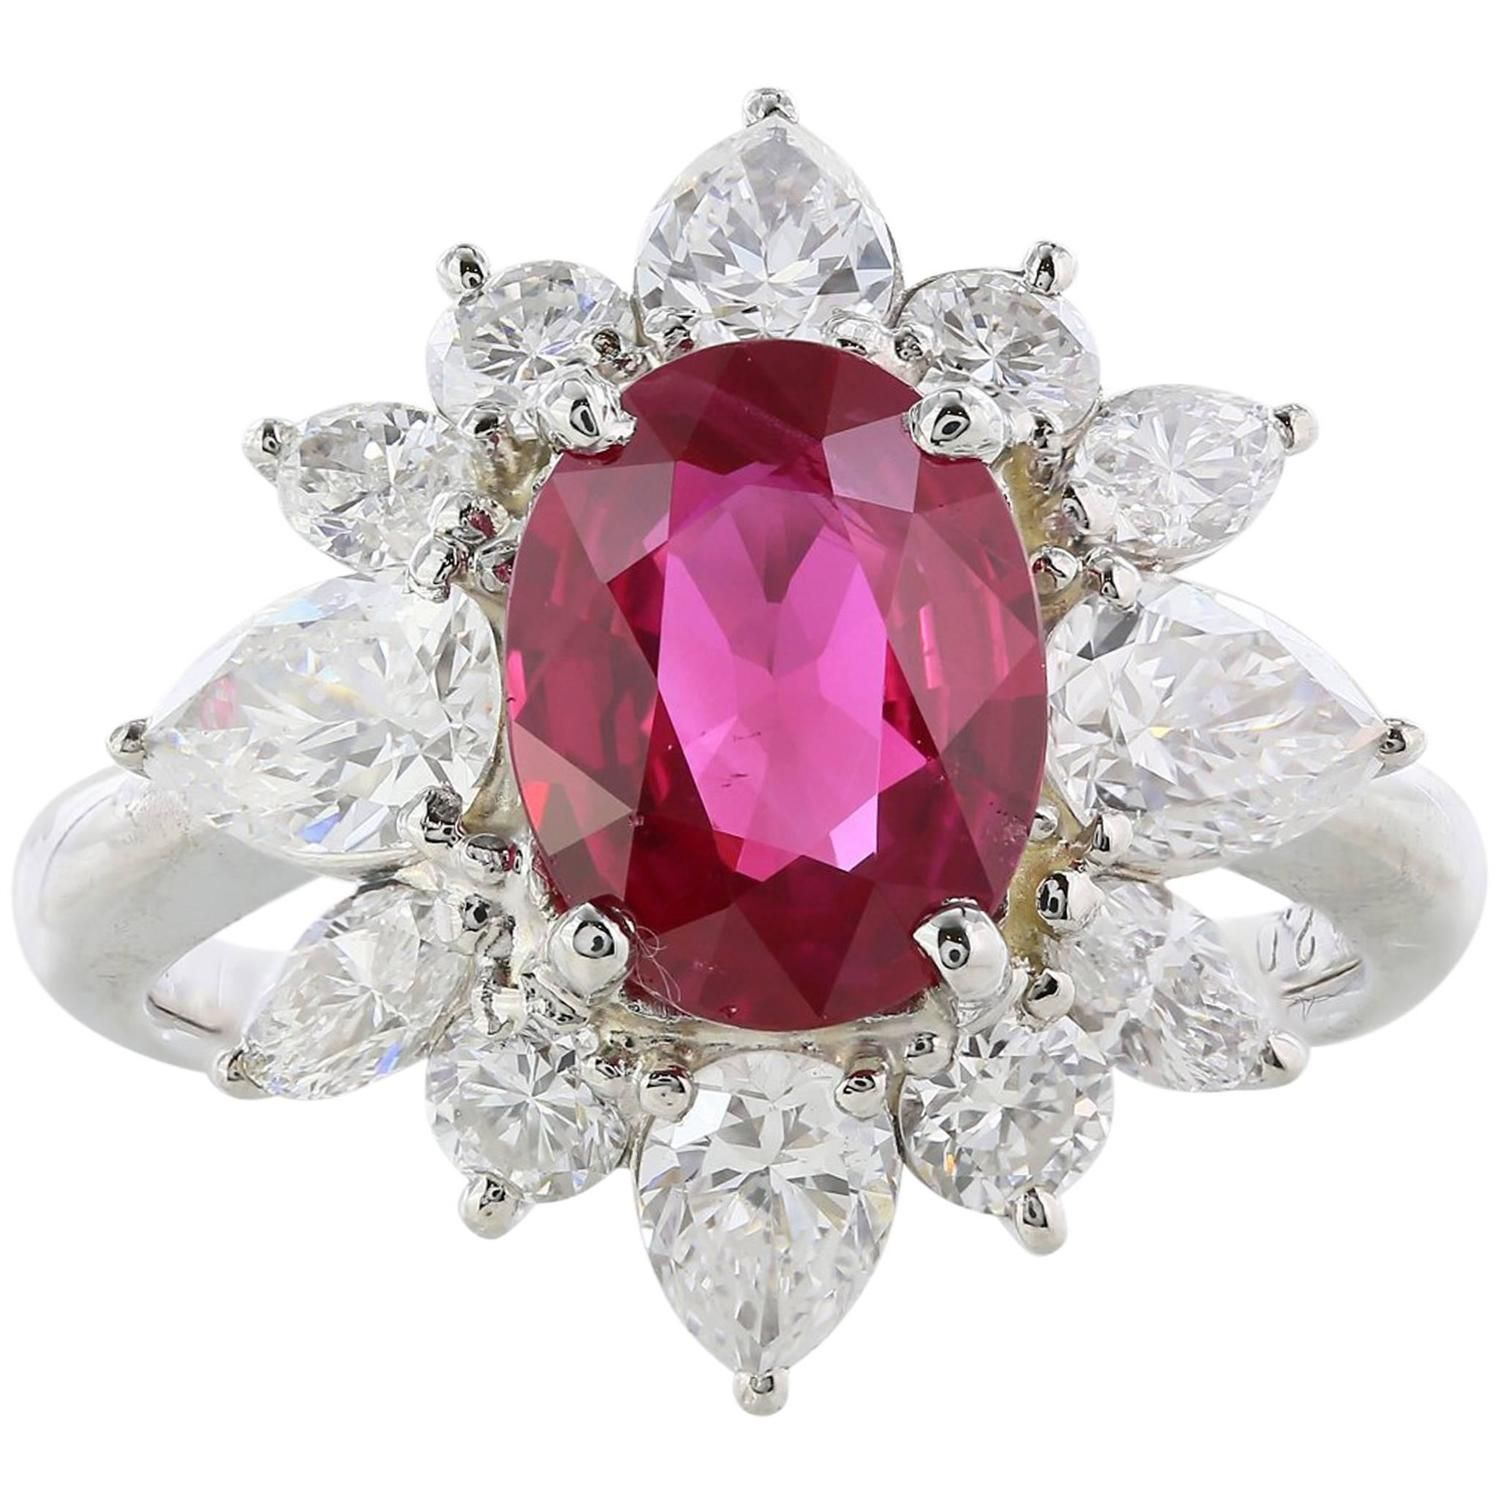 2.12 Carat Ruby Diamond Cluster Ring   Cluster ring, Diamond cluster ...